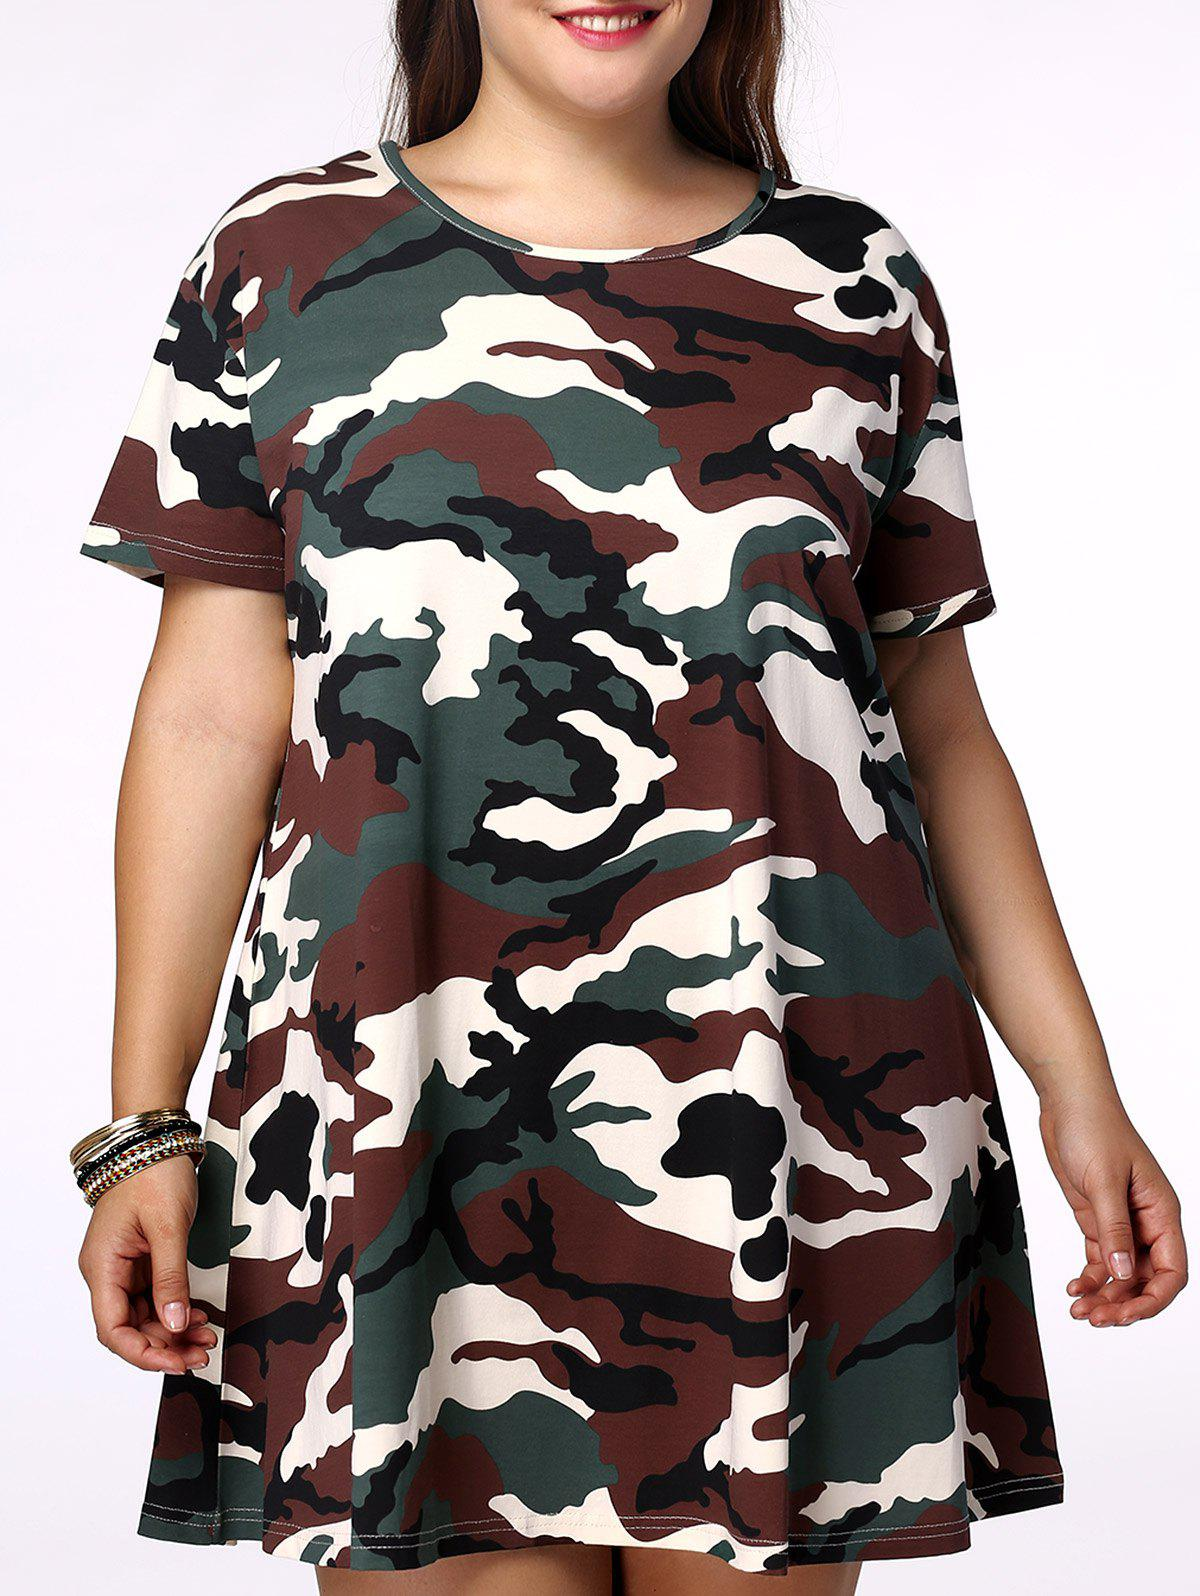 Fashionable Plus Size Scoop Neck Camo Printing Short Sleeves Dress For Women - CAMOUFLAGE 4XL